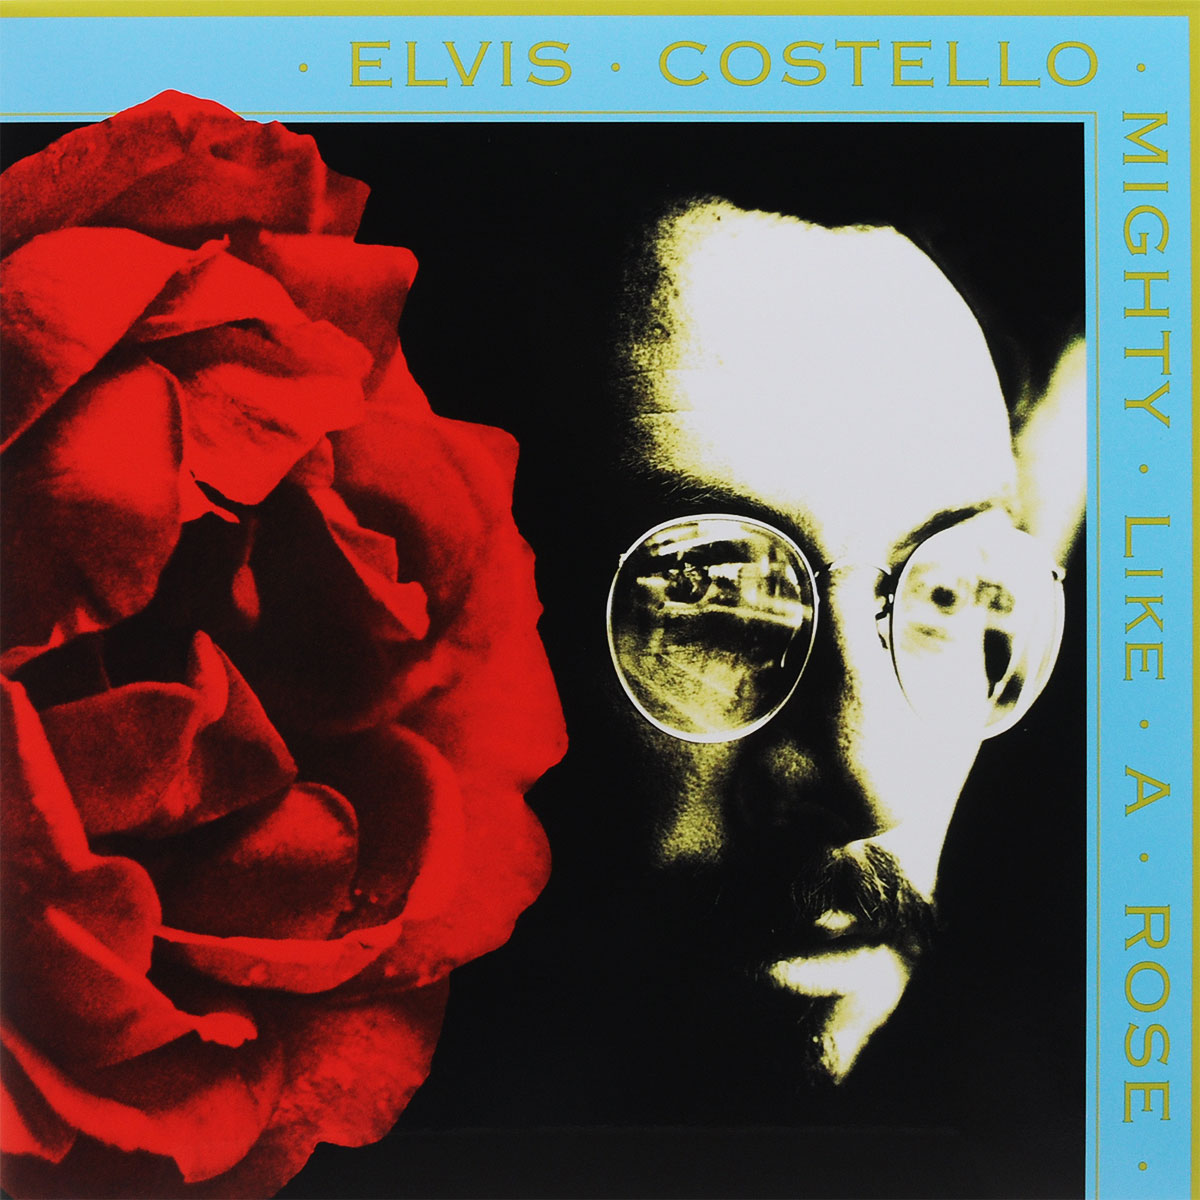 Элвис Костелло Elvis Costello. Mighty Like A Rose (LP) элвис костелло elvis costello taking liberties lp